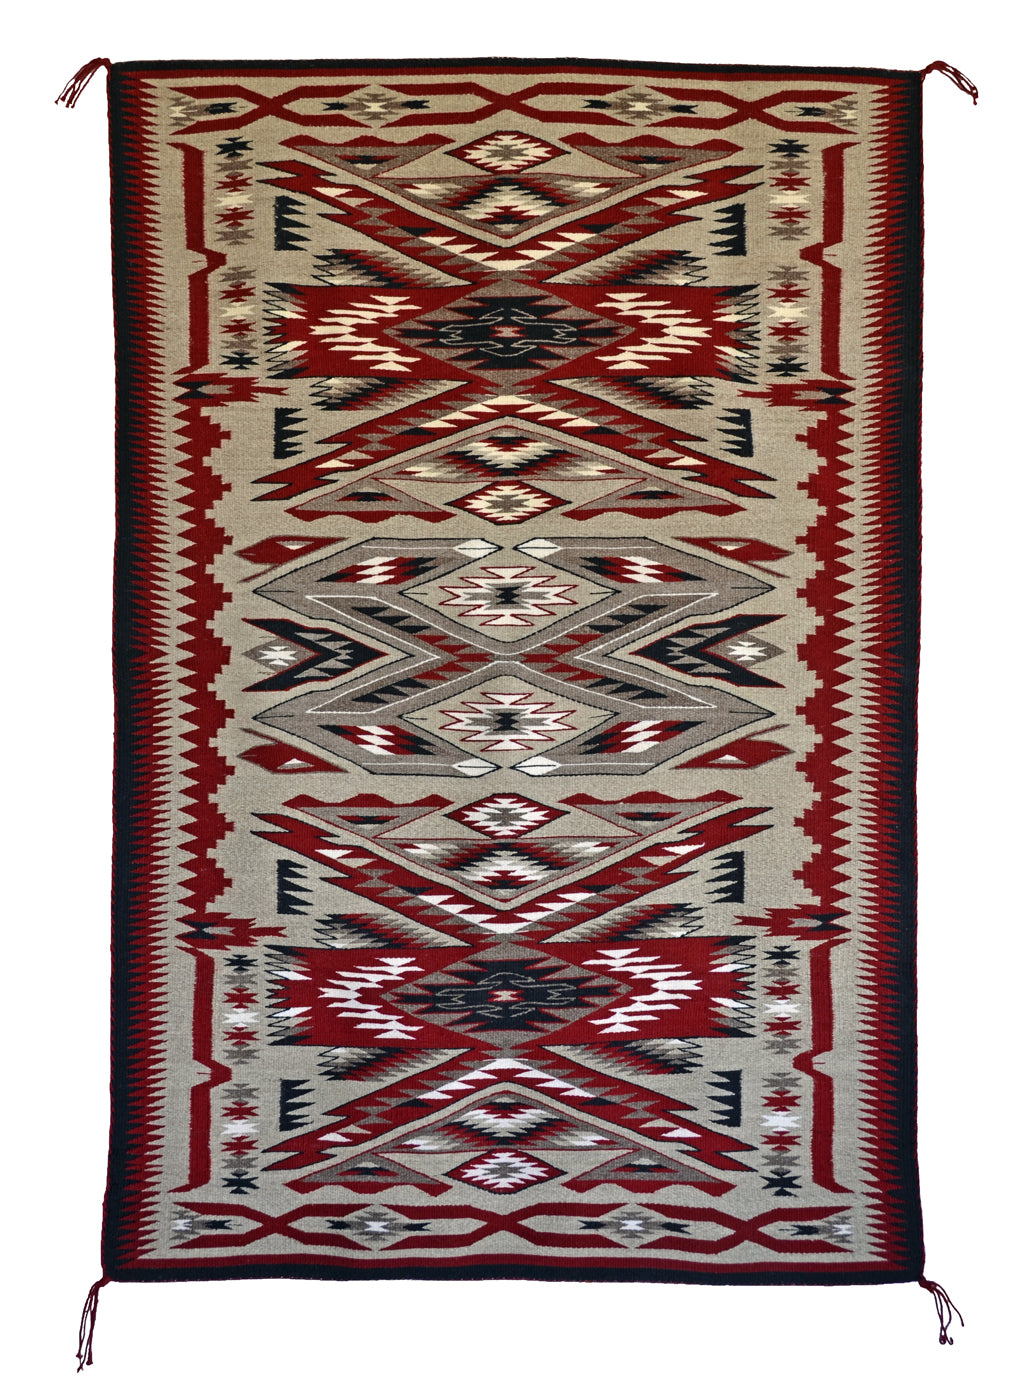 "American Indian Rug : Storm Pattern Variant : Gabrielle Chester : 3388 : 37″ x 56"" - Getzwiller's Nizhoni Ranch Gallery"